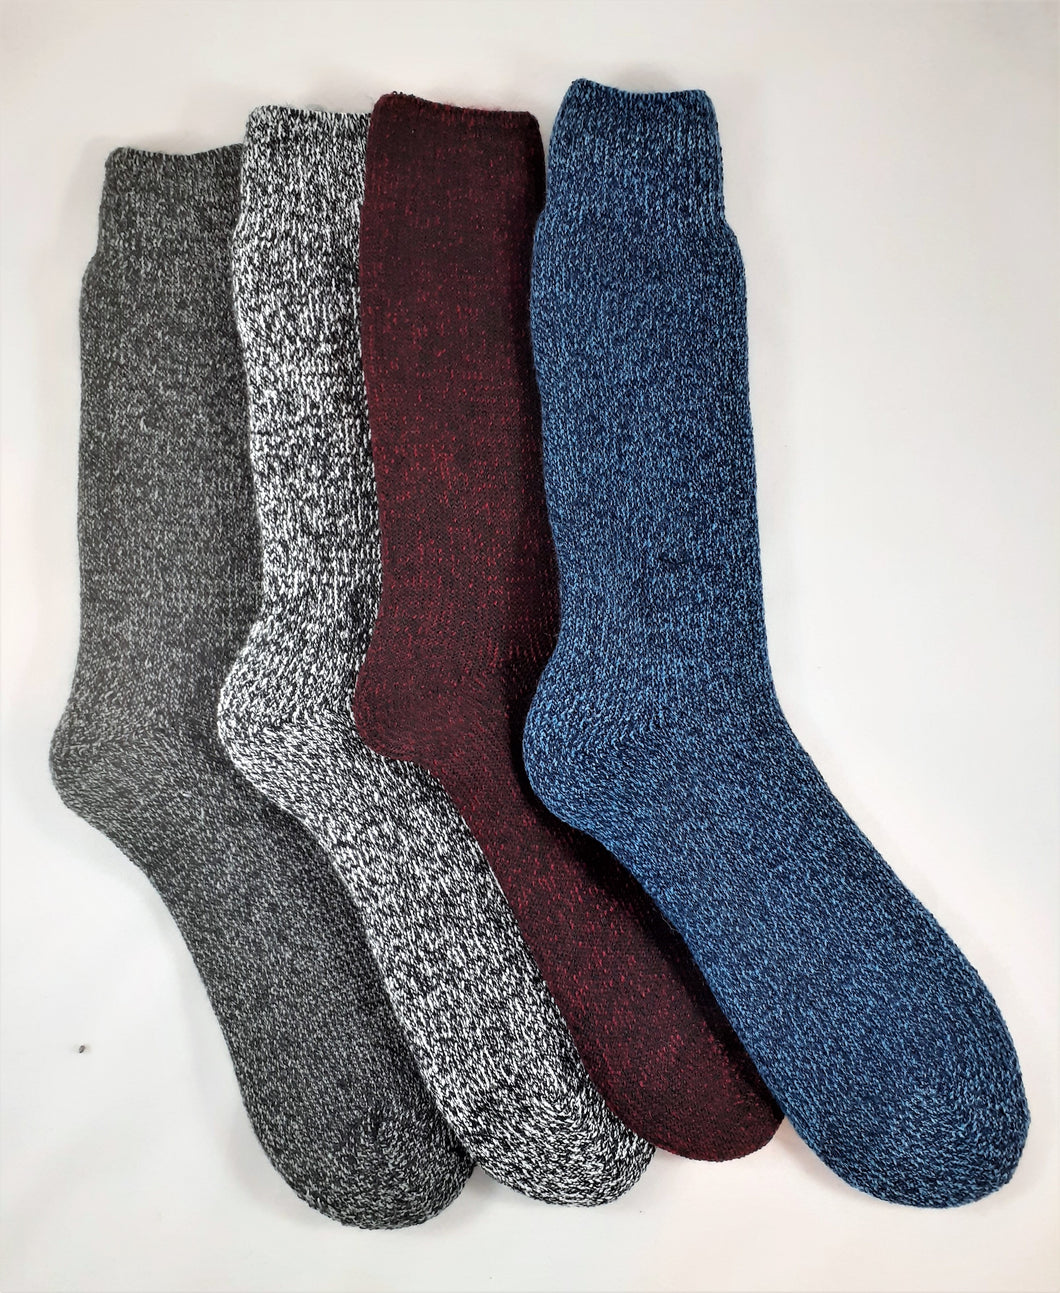 Polar Extreme Men's socks